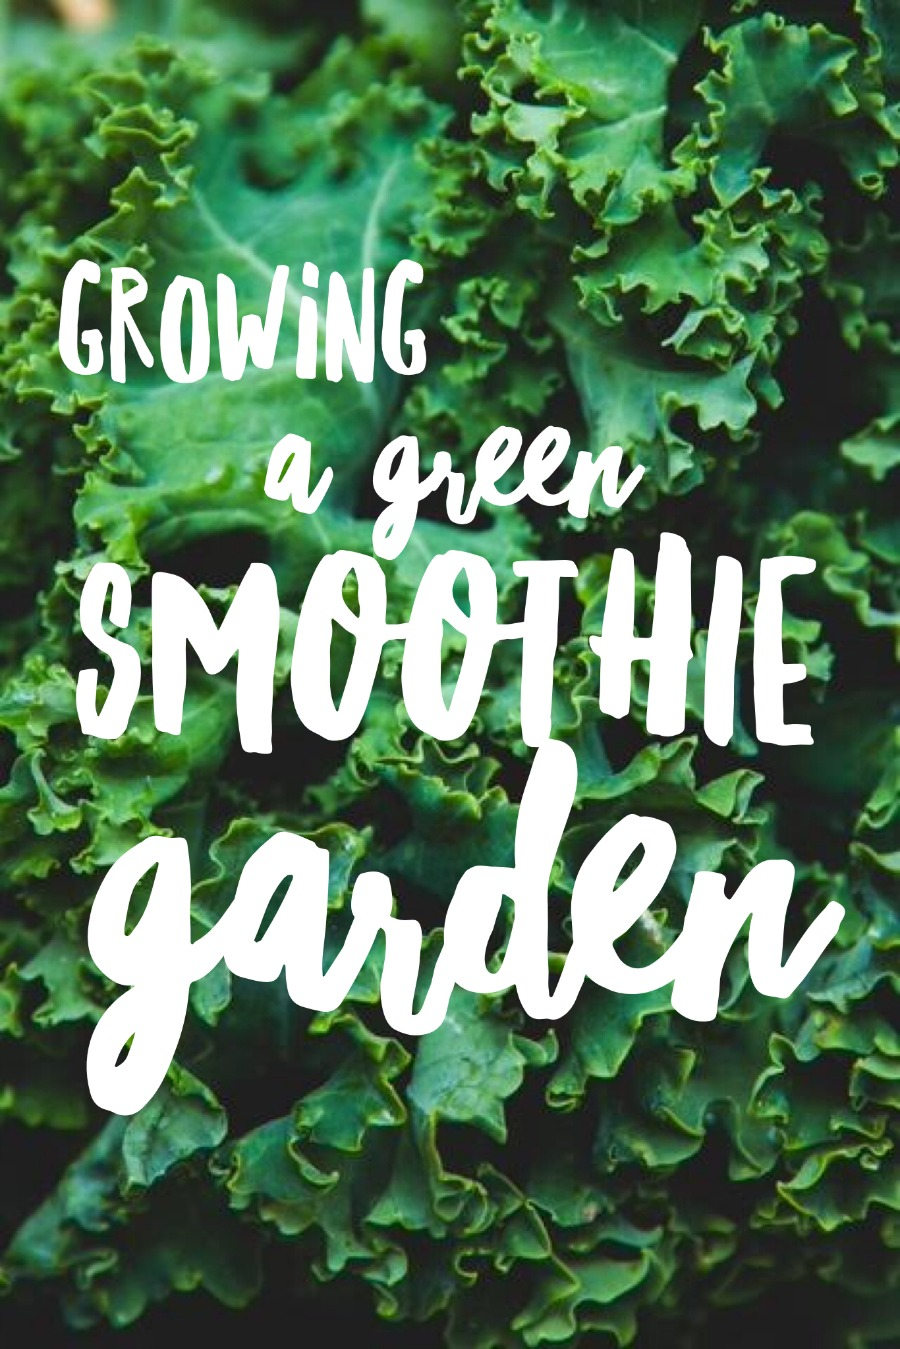 Planting a green smoothie garden is a great way to get started healthier eating habits